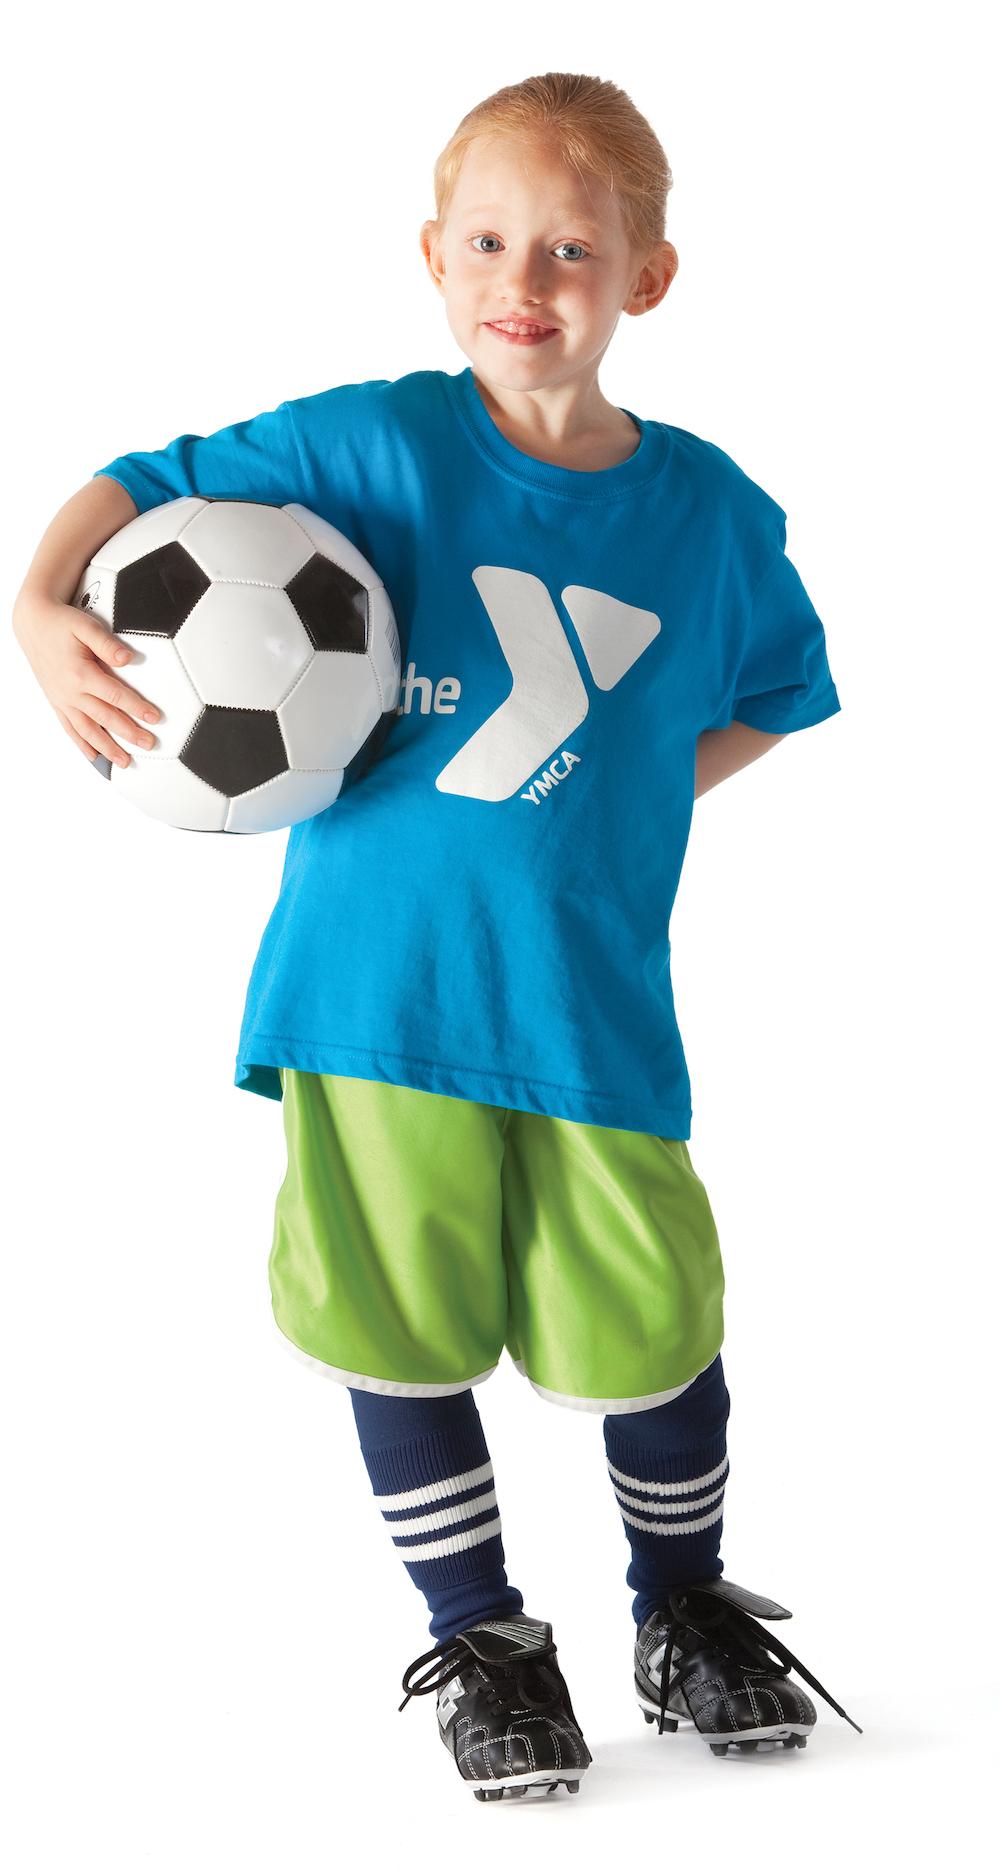 Schedules | Hornell Area Family YMCA